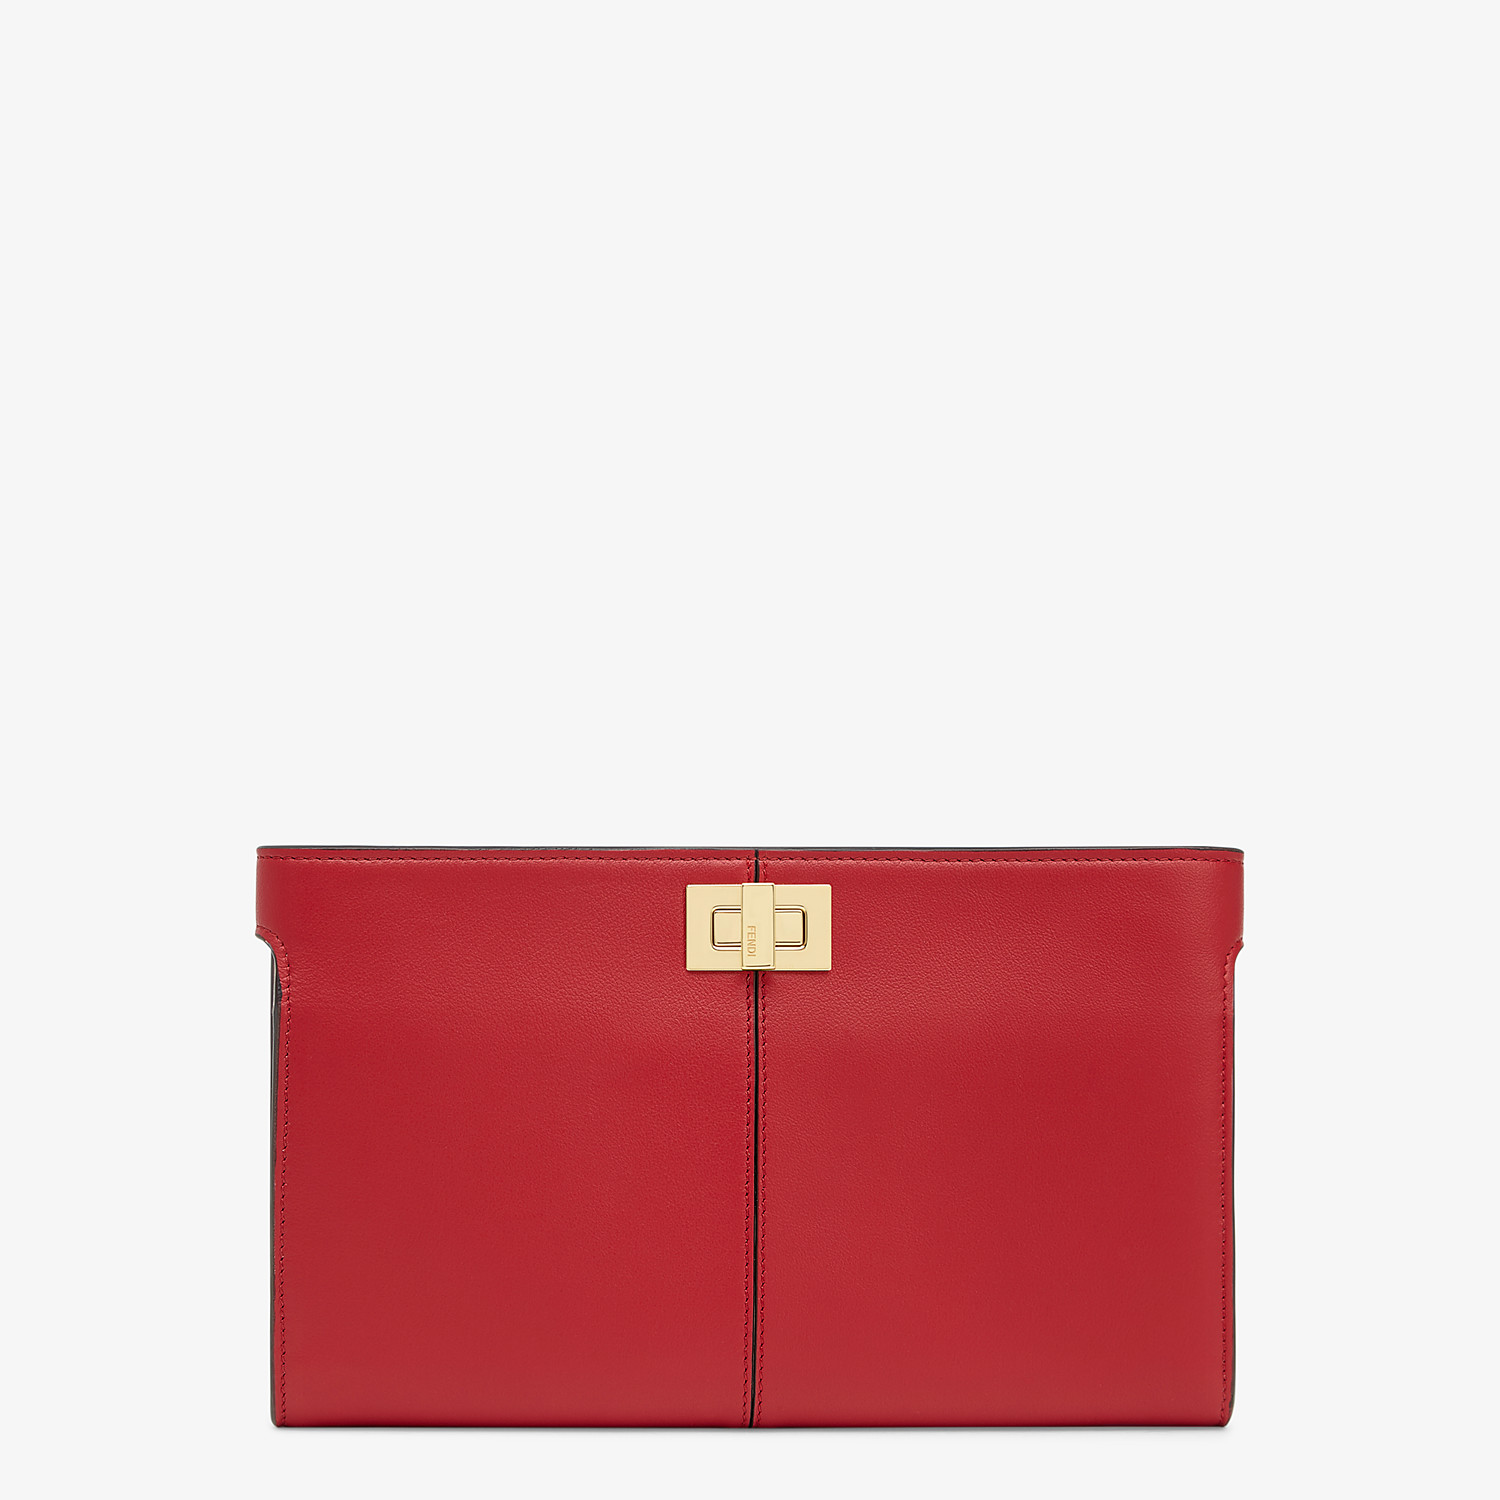 FENDI WALLET - Red leather wallet - view 1 detail